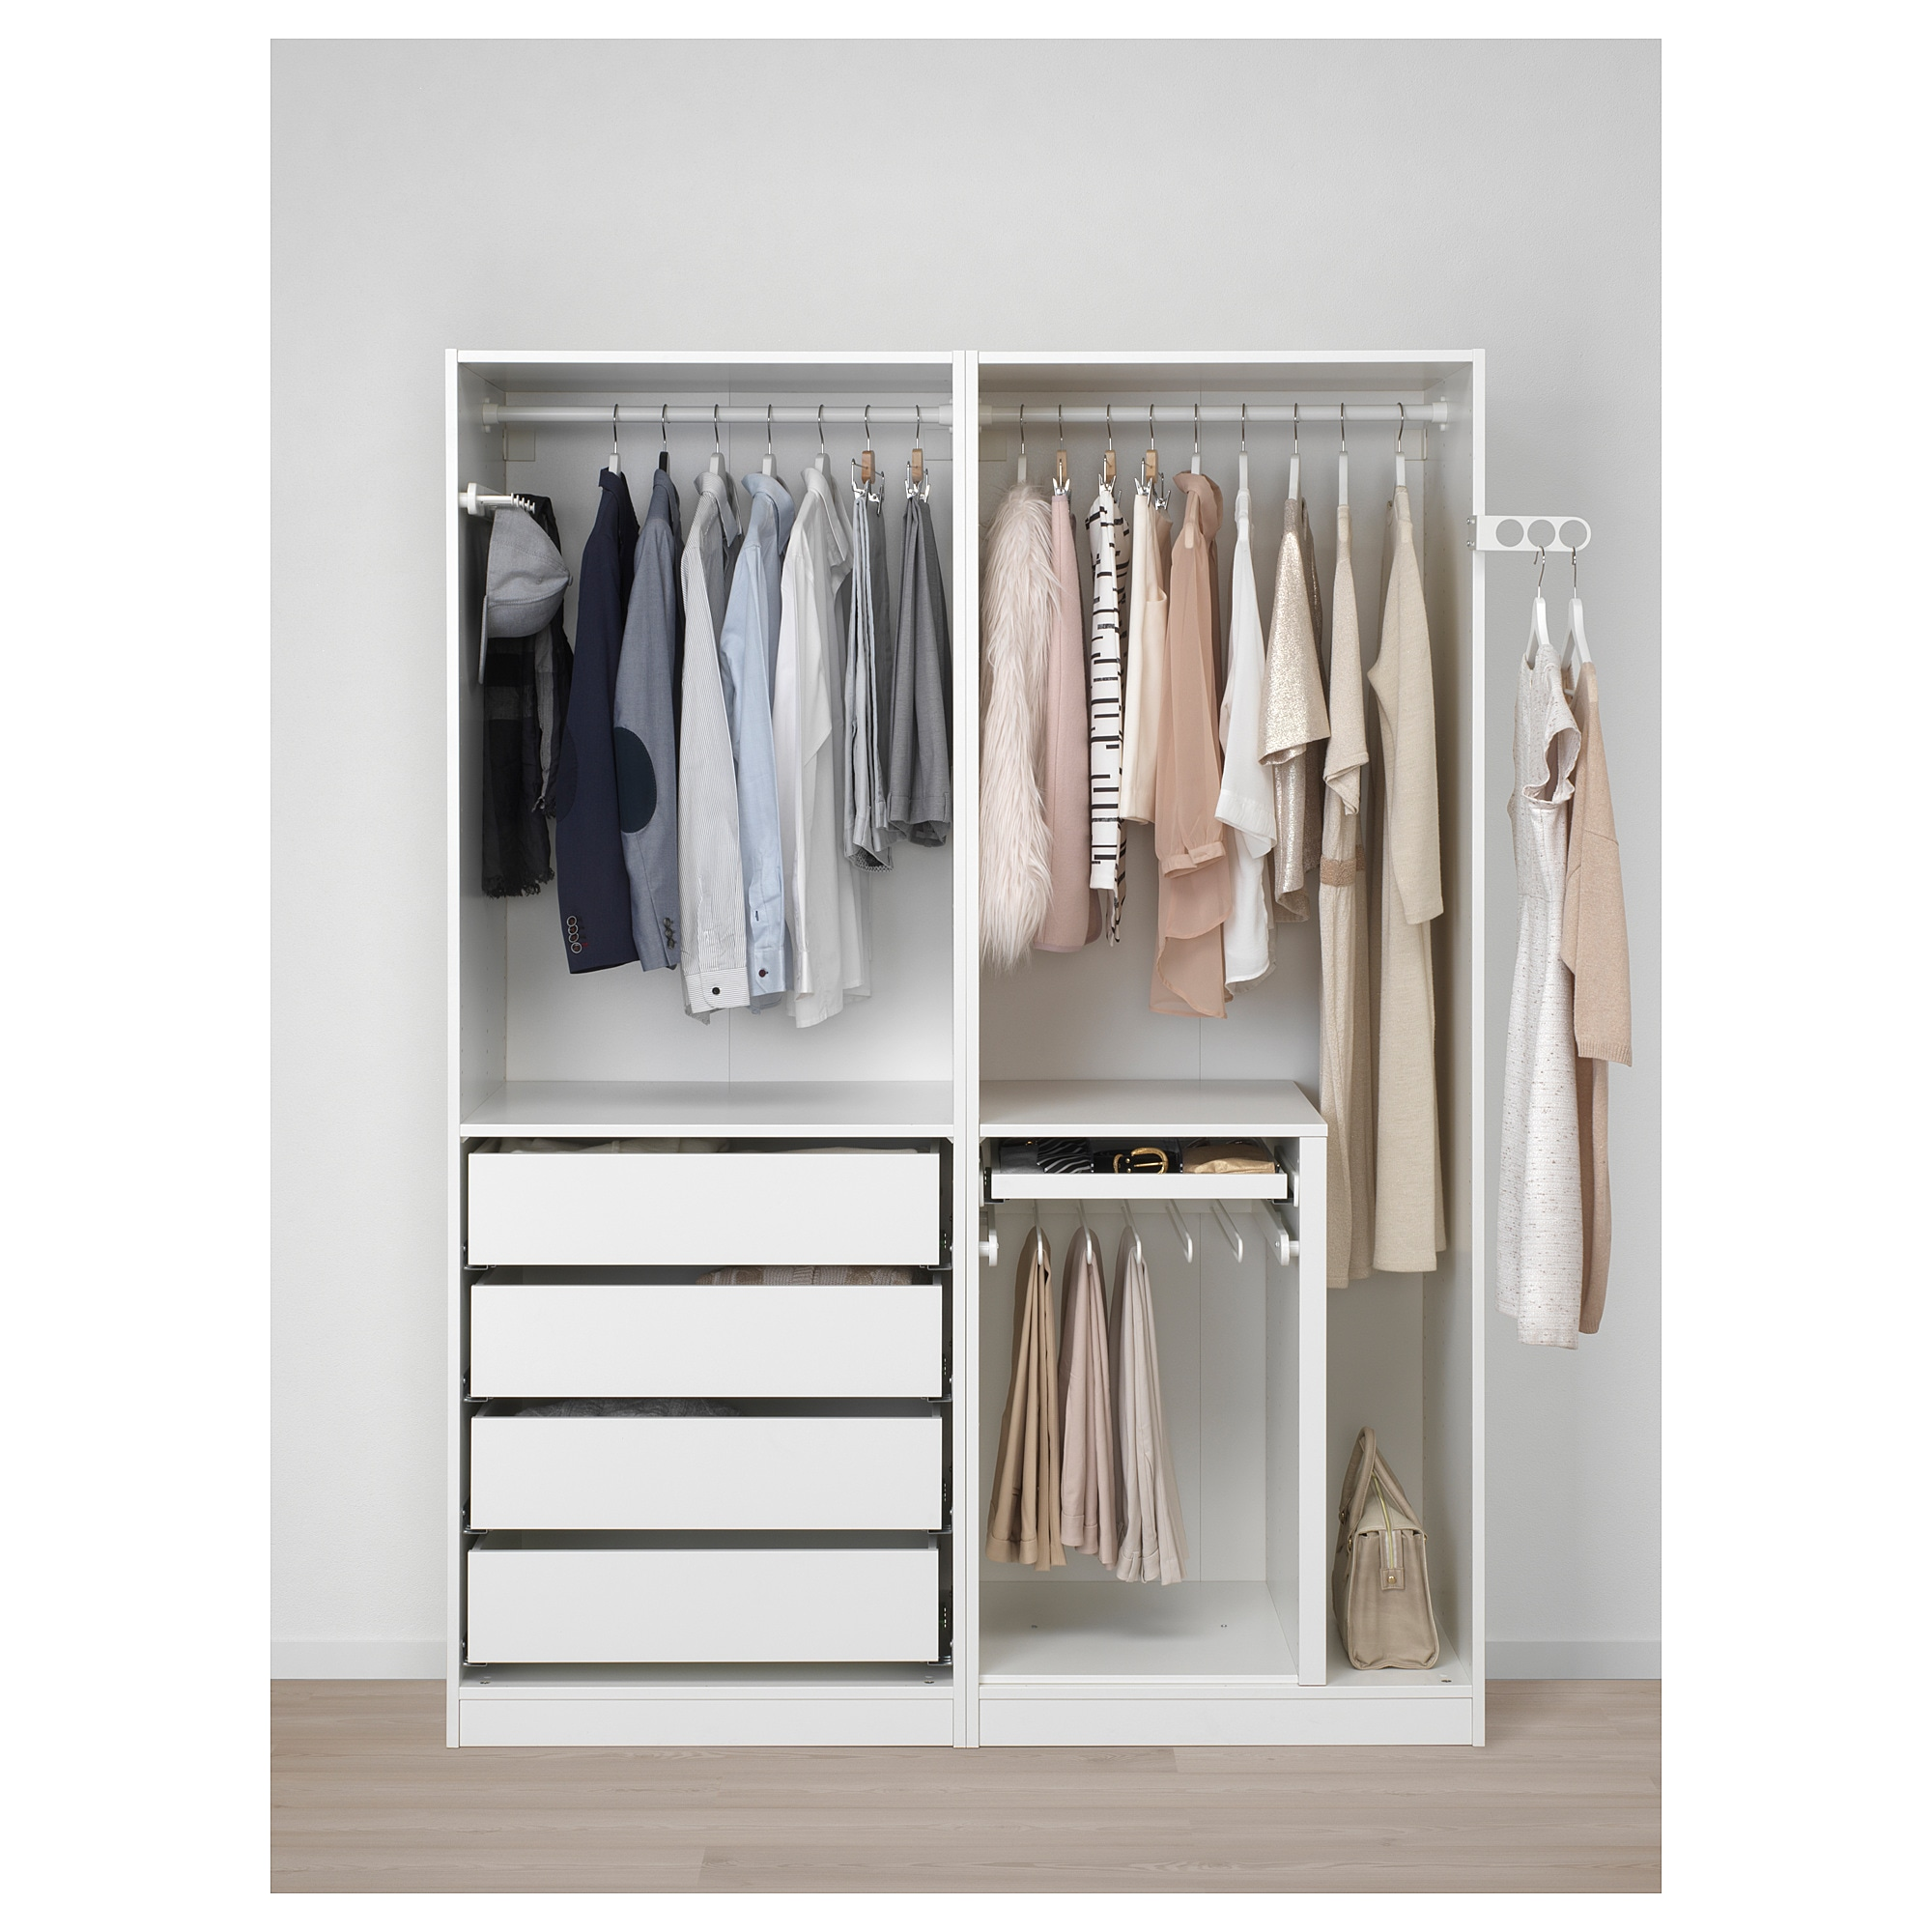 rack fix to stitch cleanse how ultimate closet tips w out your clean shot fashion style pants